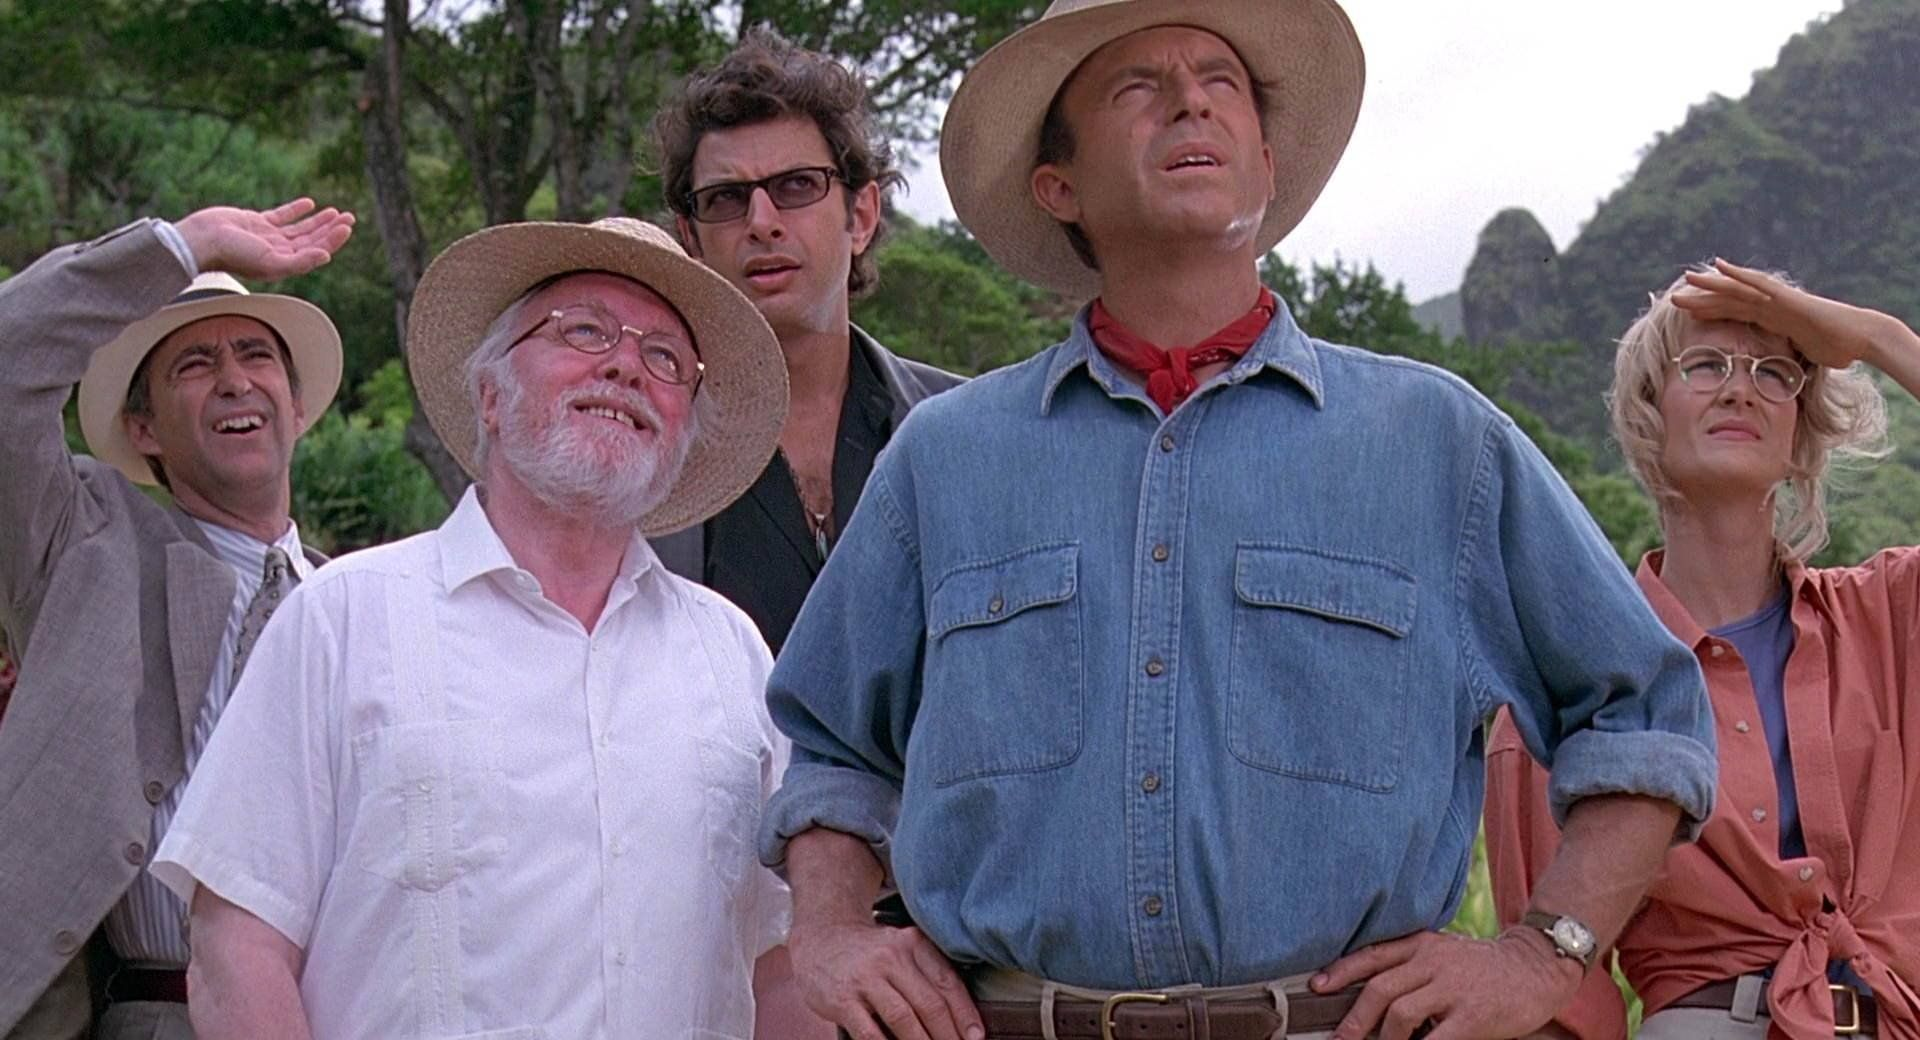 THEN AND NOW The cast of 'Jurassic Park' 25 years later